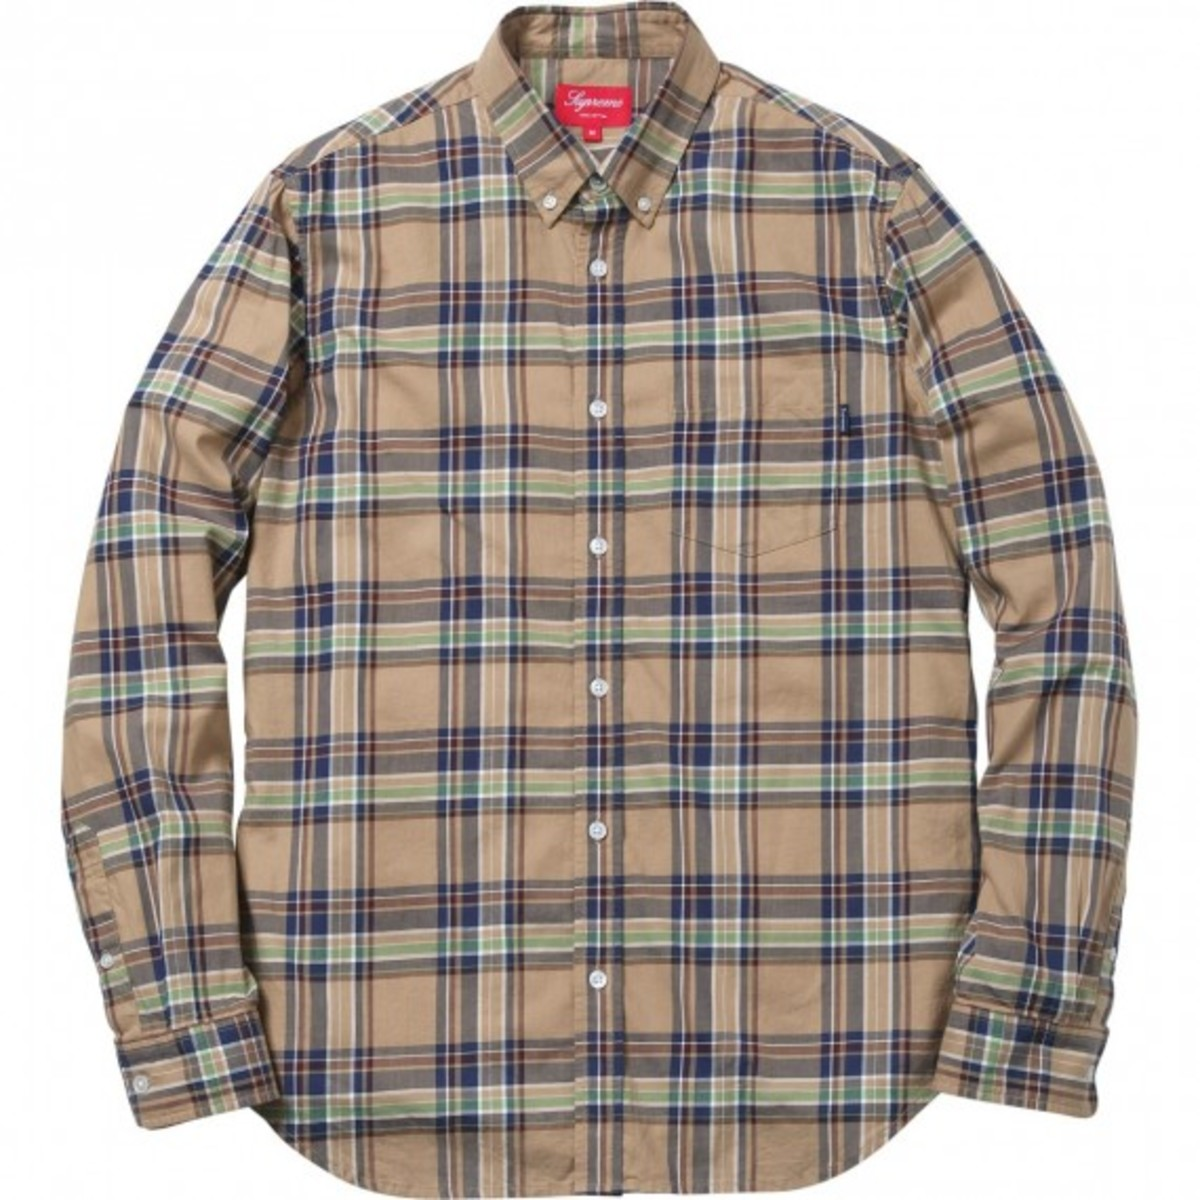 supreme-fall-winter-2011-collection-available-now-11